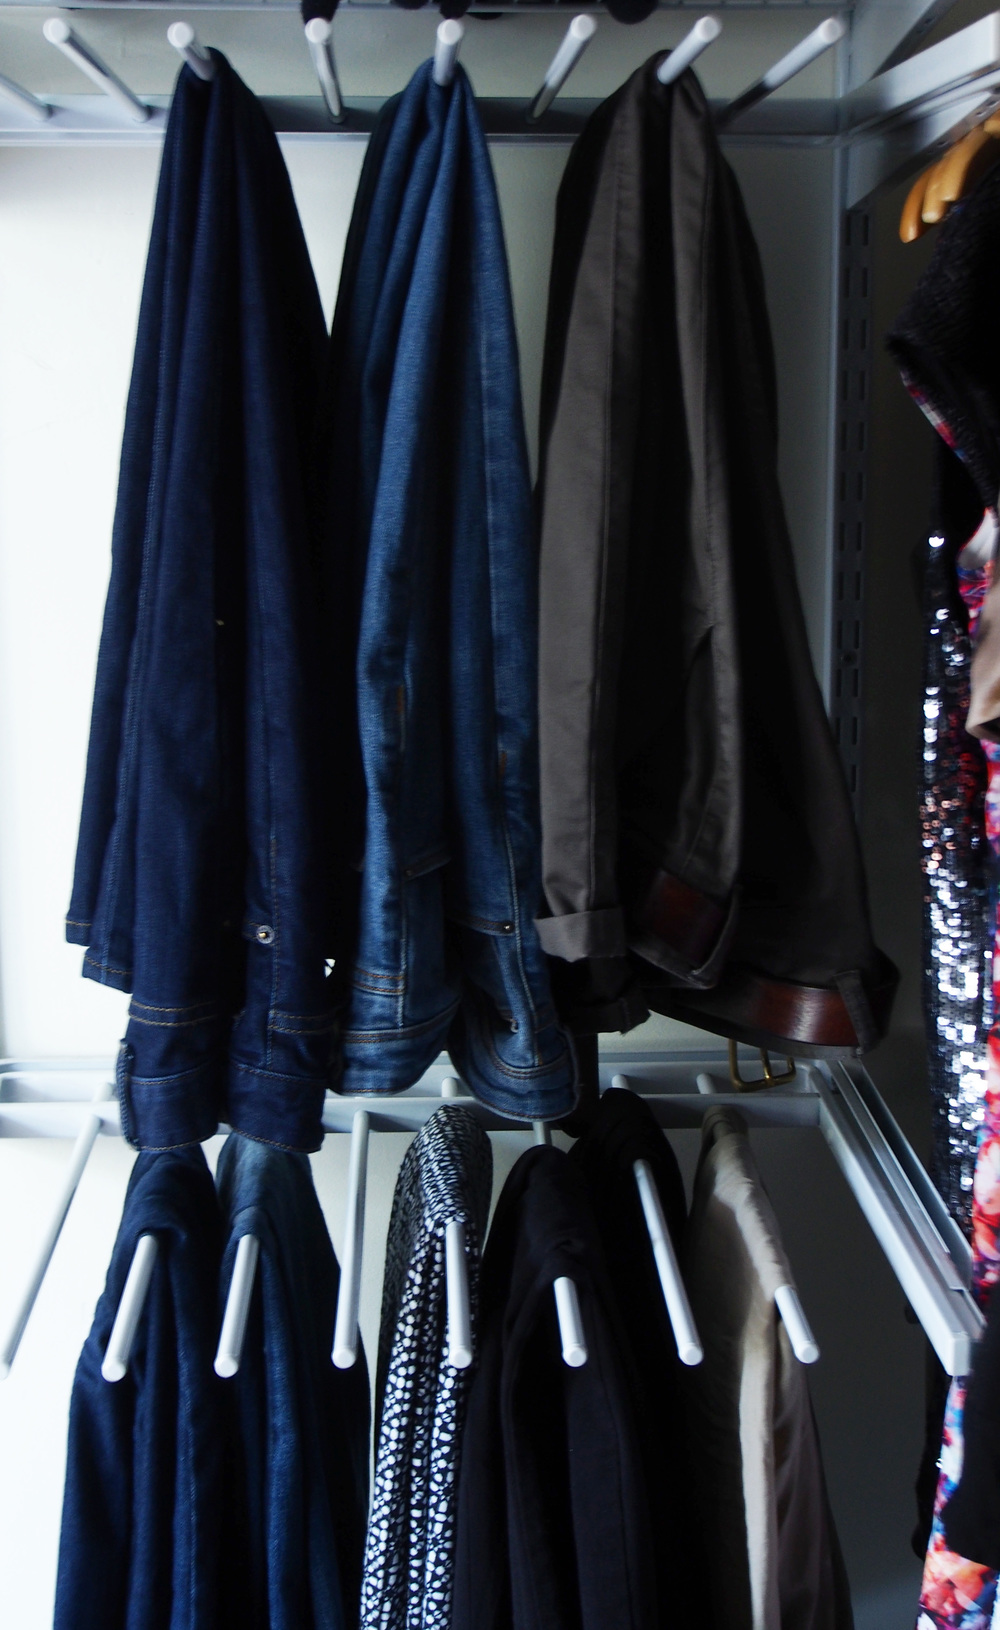 hanging pants rack